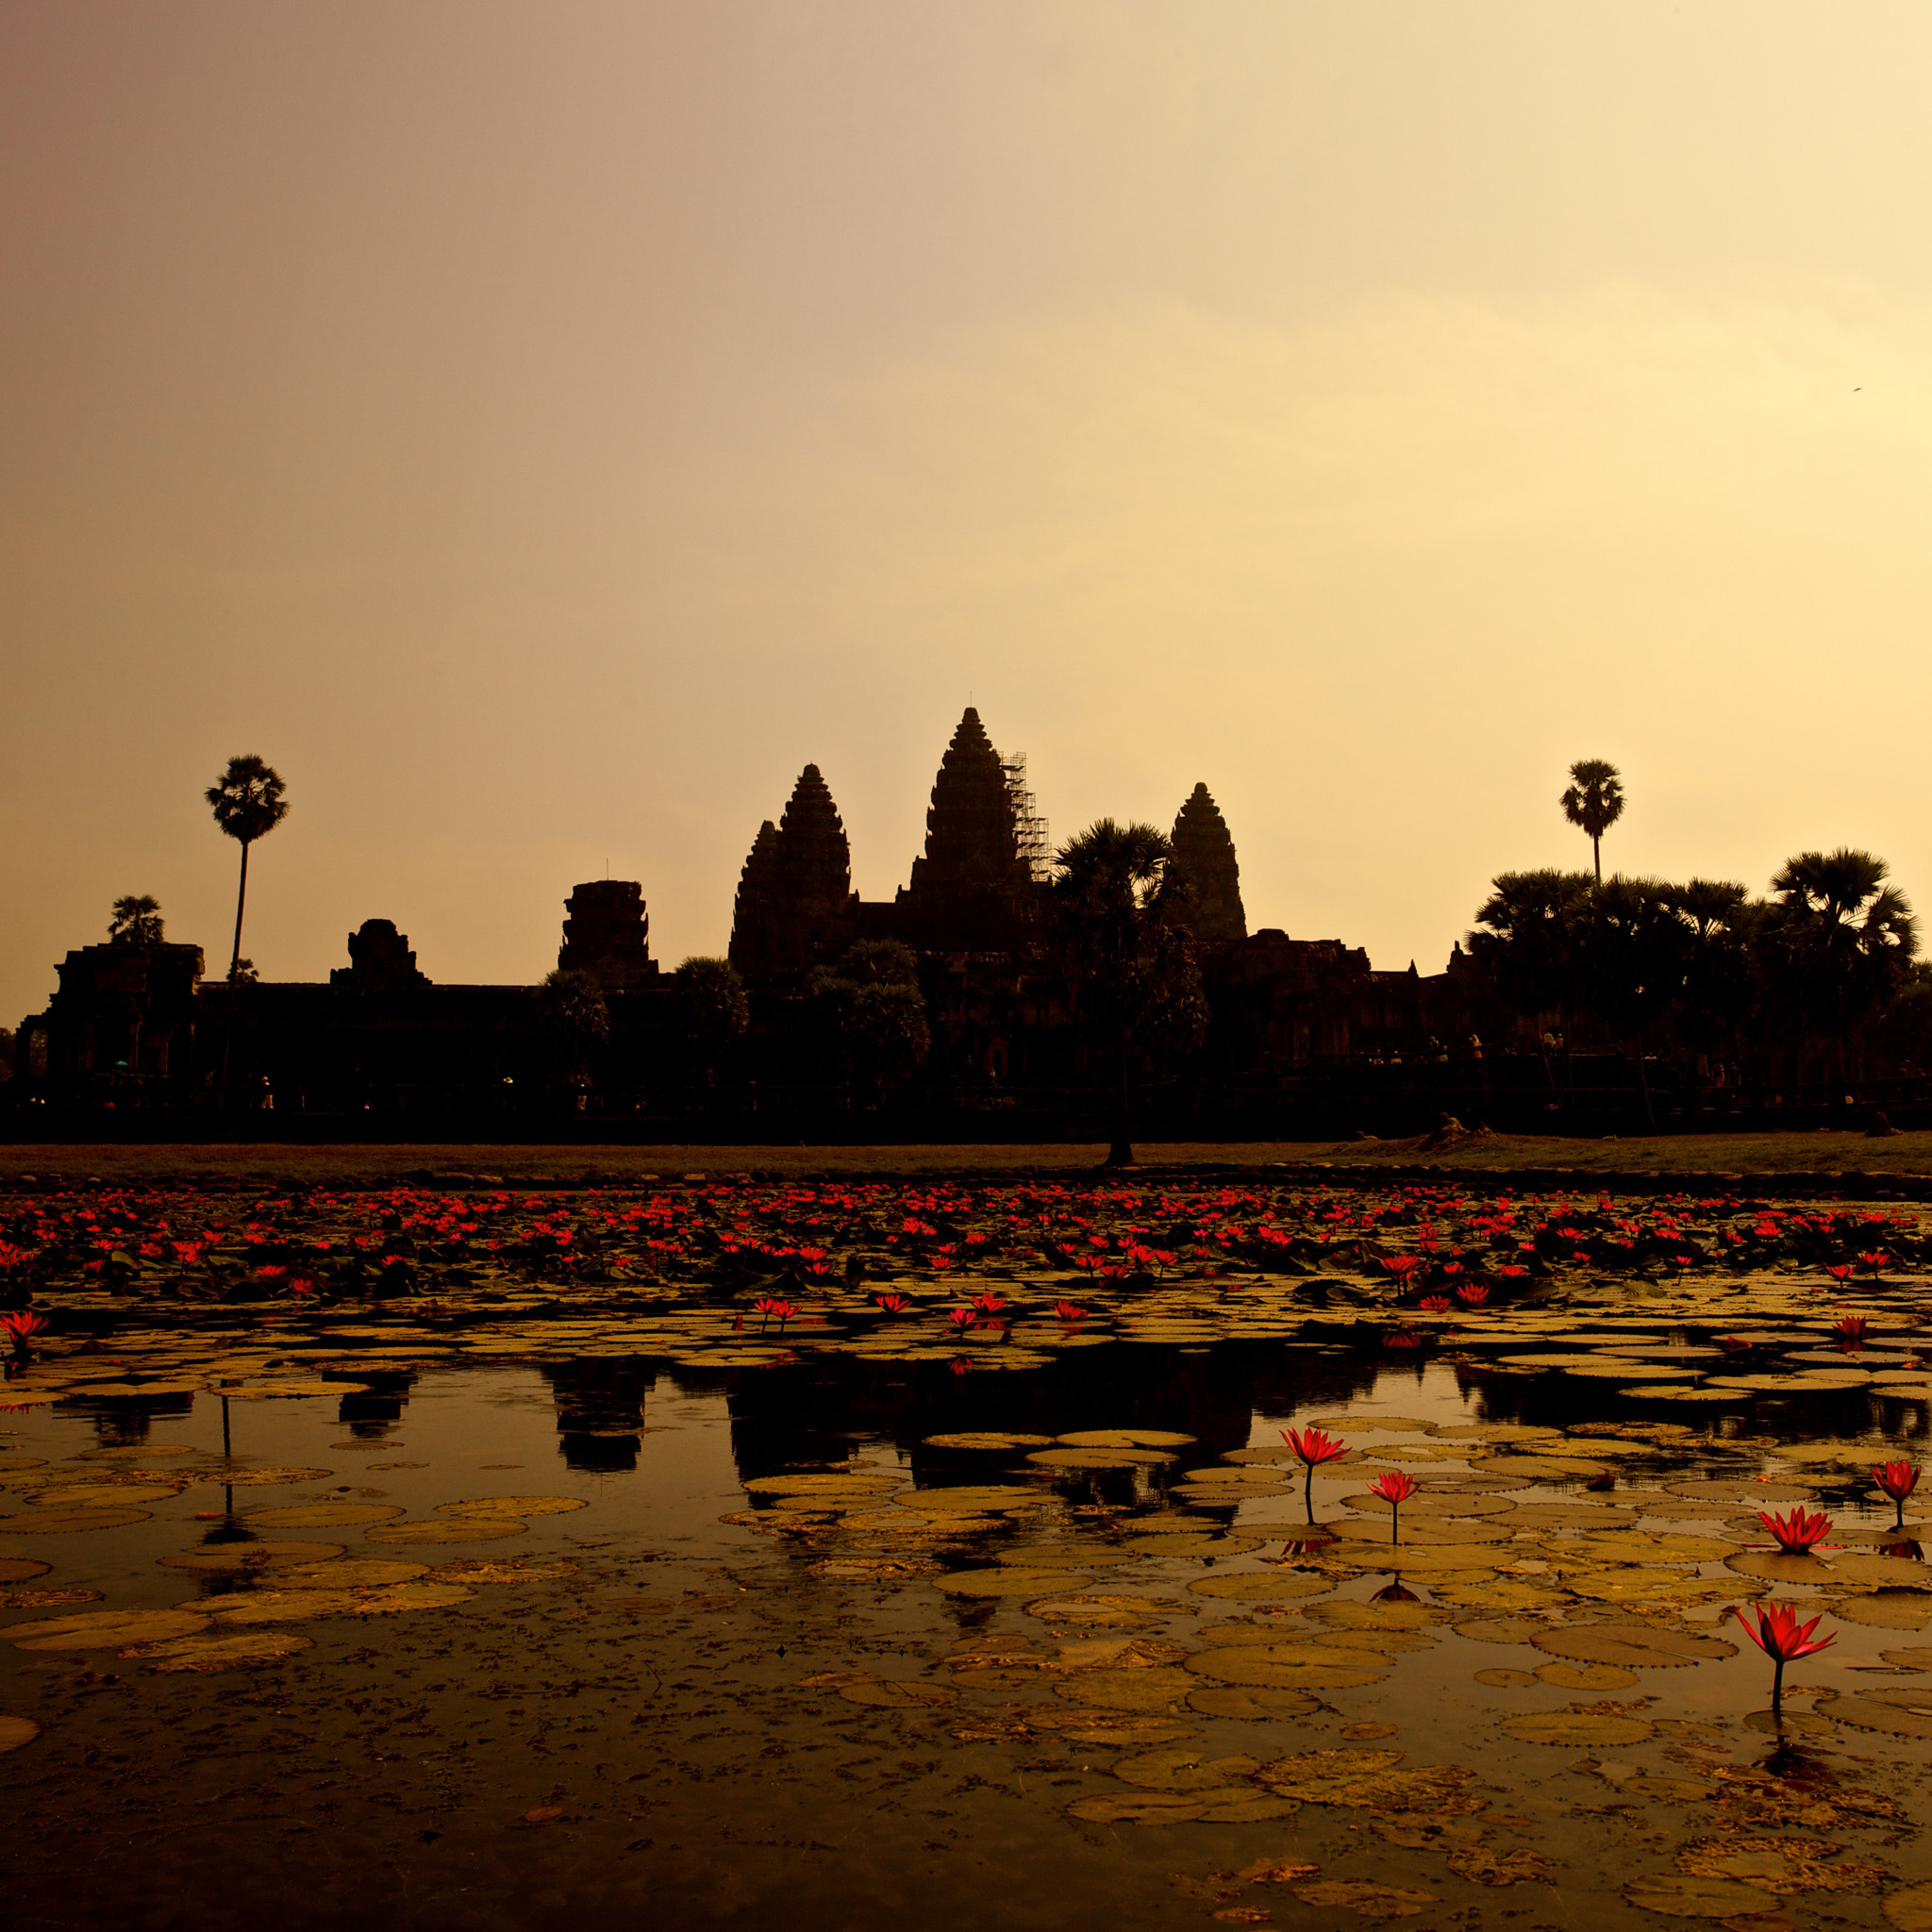 mark sebastian - cambodia angkor wat ipad wallpaper